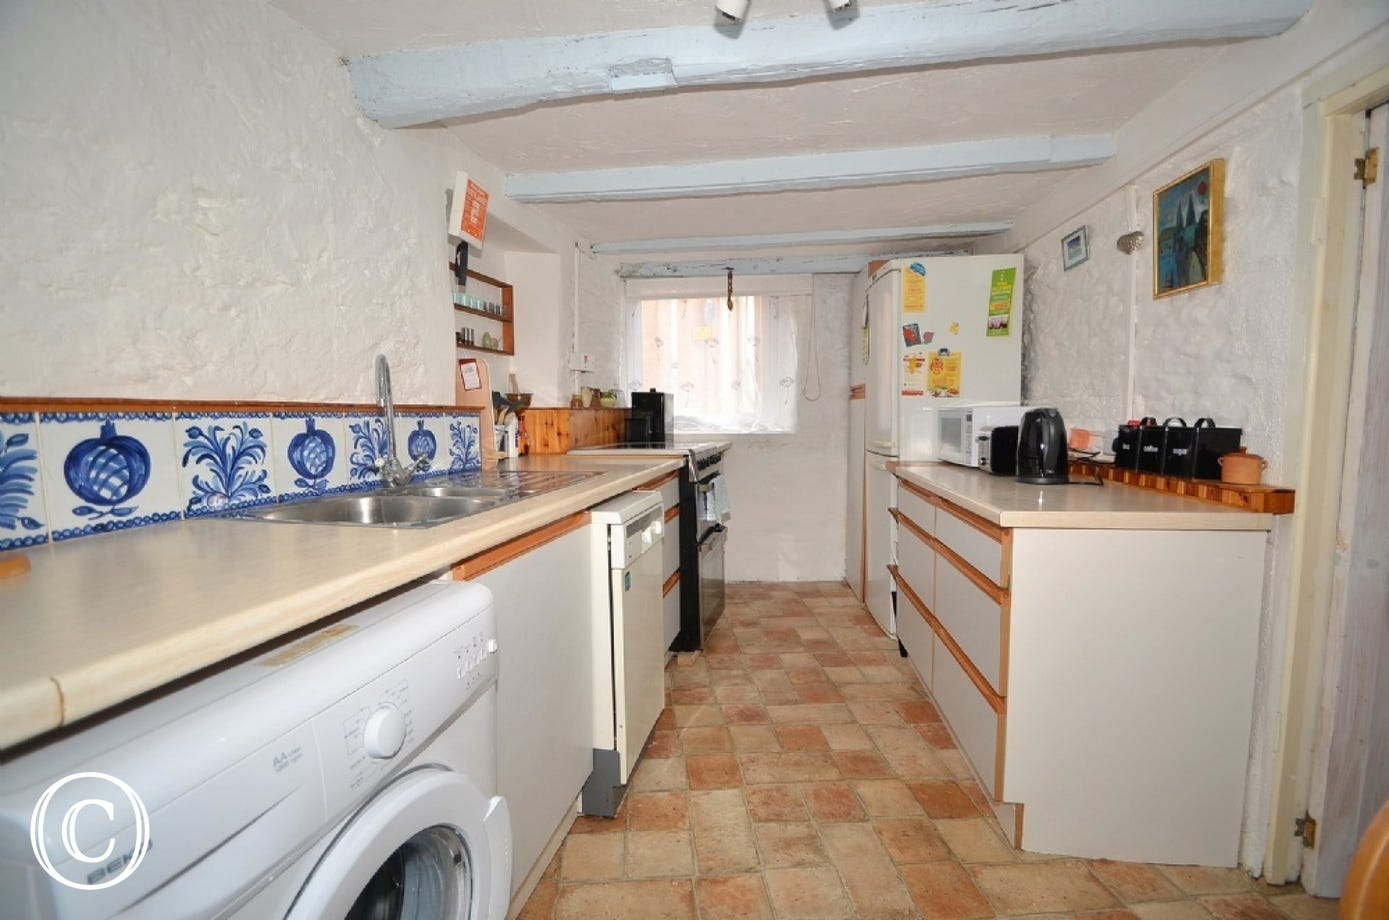 Kitchen: Galley, cottage style with quarry tiles floor. Washing machine, dishwasher, free standing electric cooker, fridge freezer, microwave, toaster and kettle.